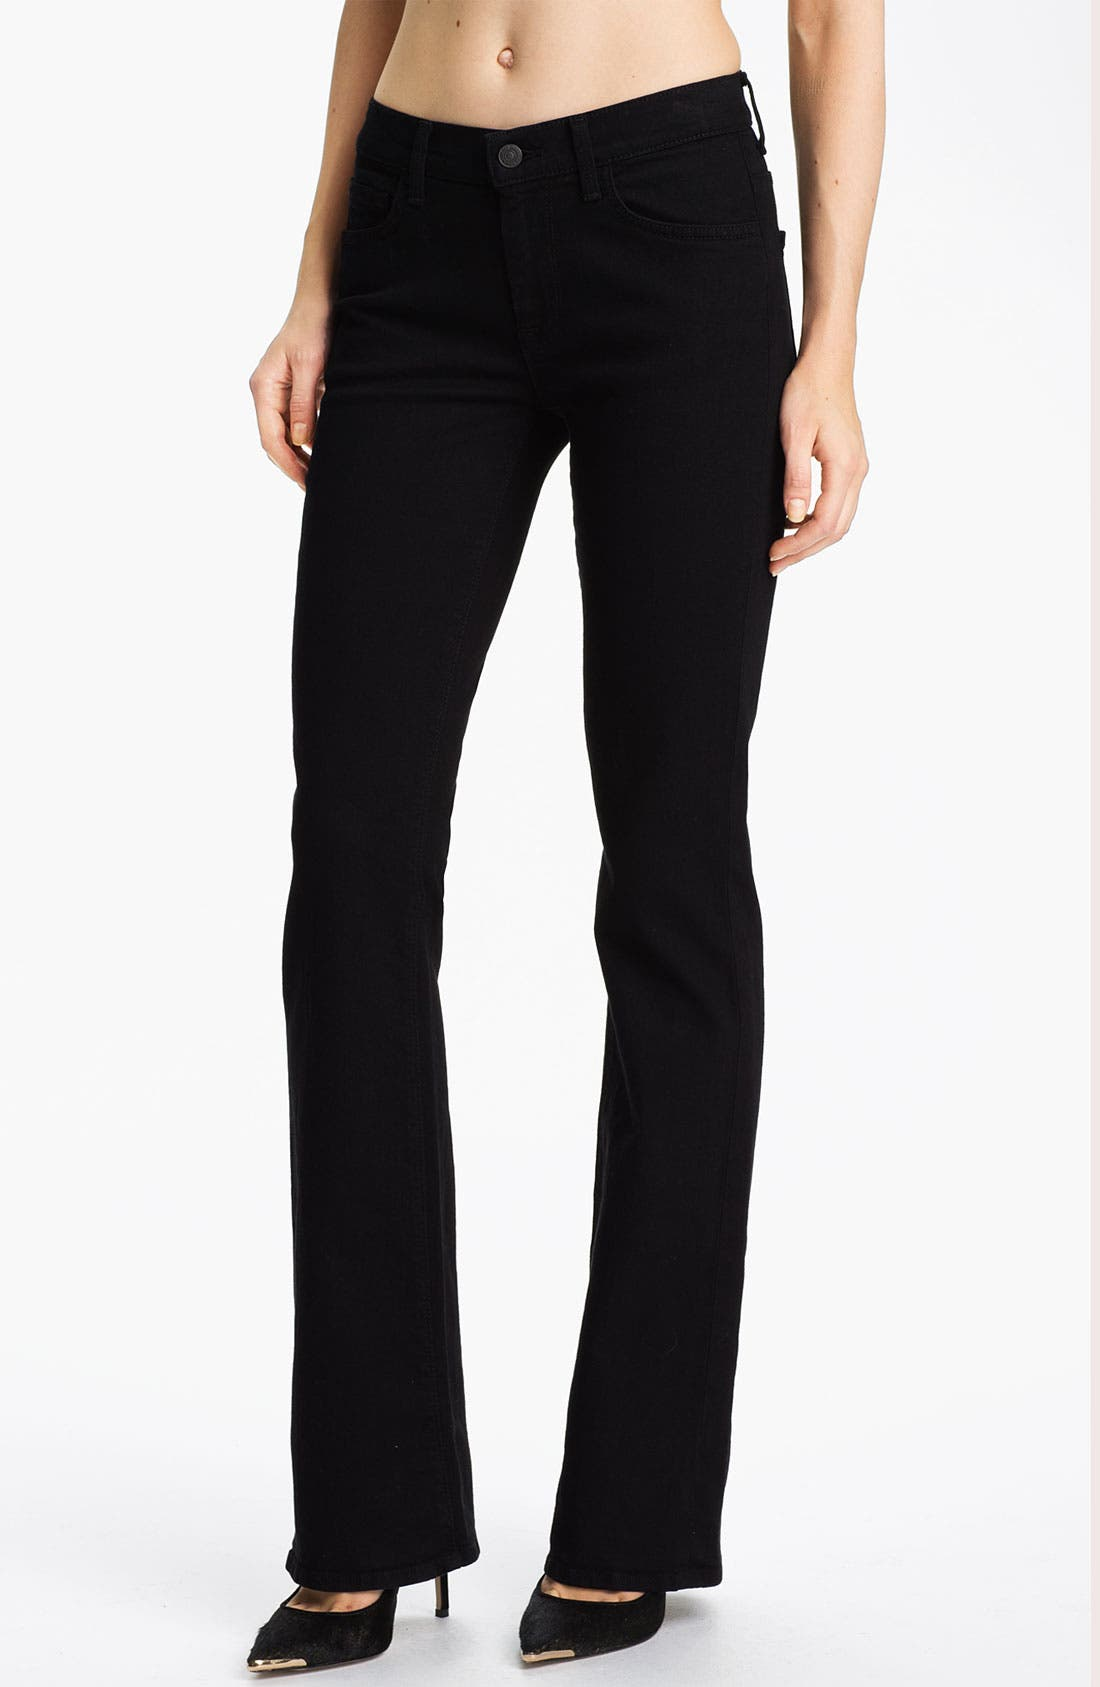 Alternate Image 1 Selected - 7 For All Mankind® Bootcut Stretch Jeans (Black)